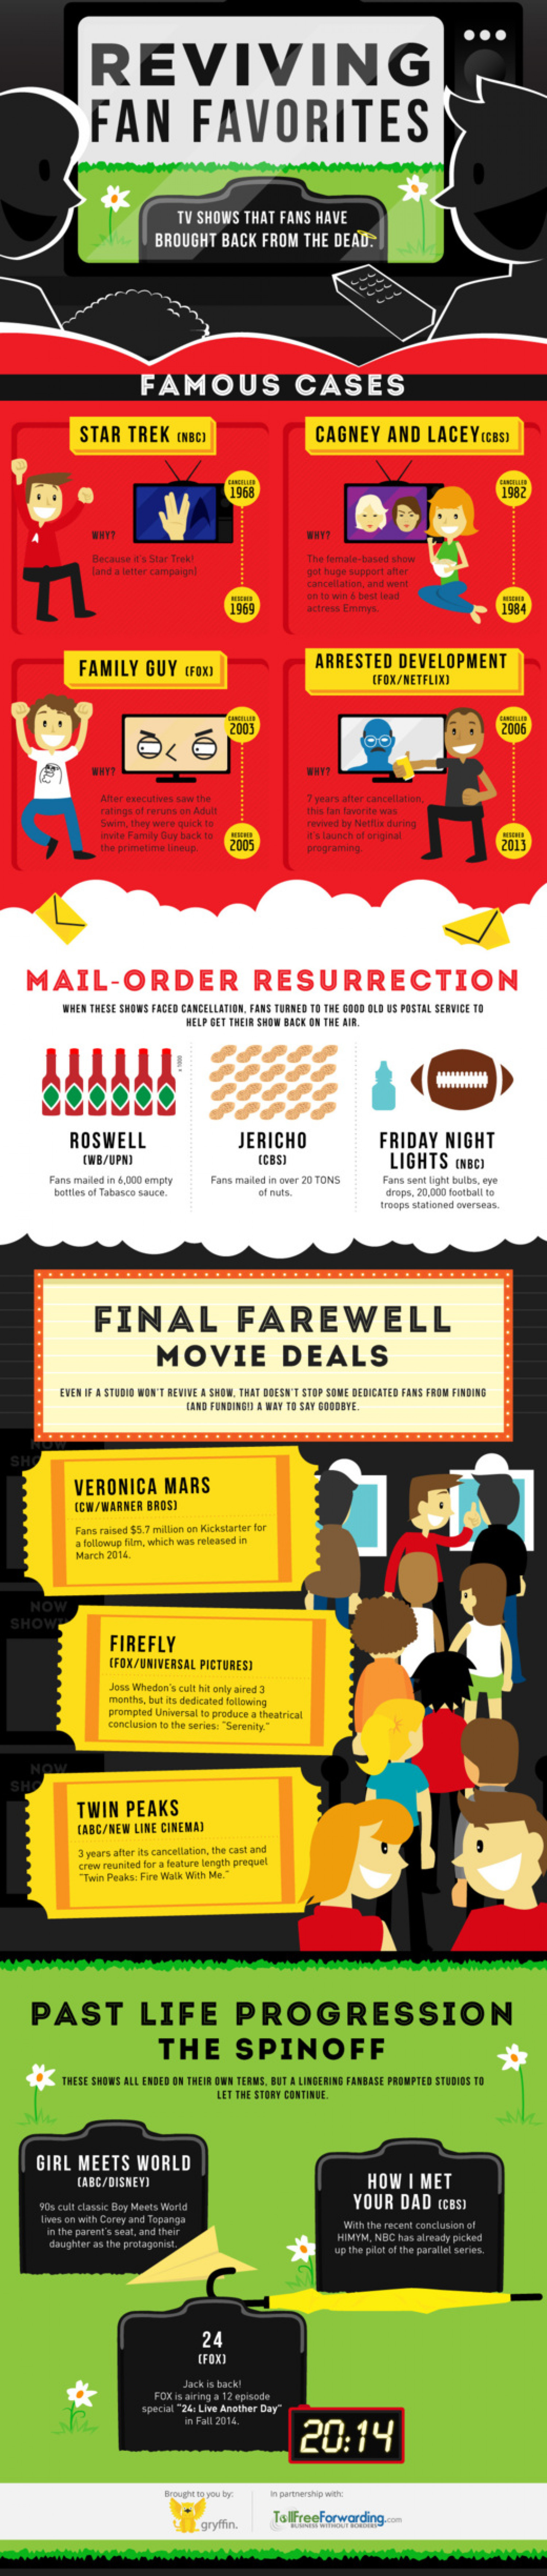 Reviving TV Fan Favorites Infographic